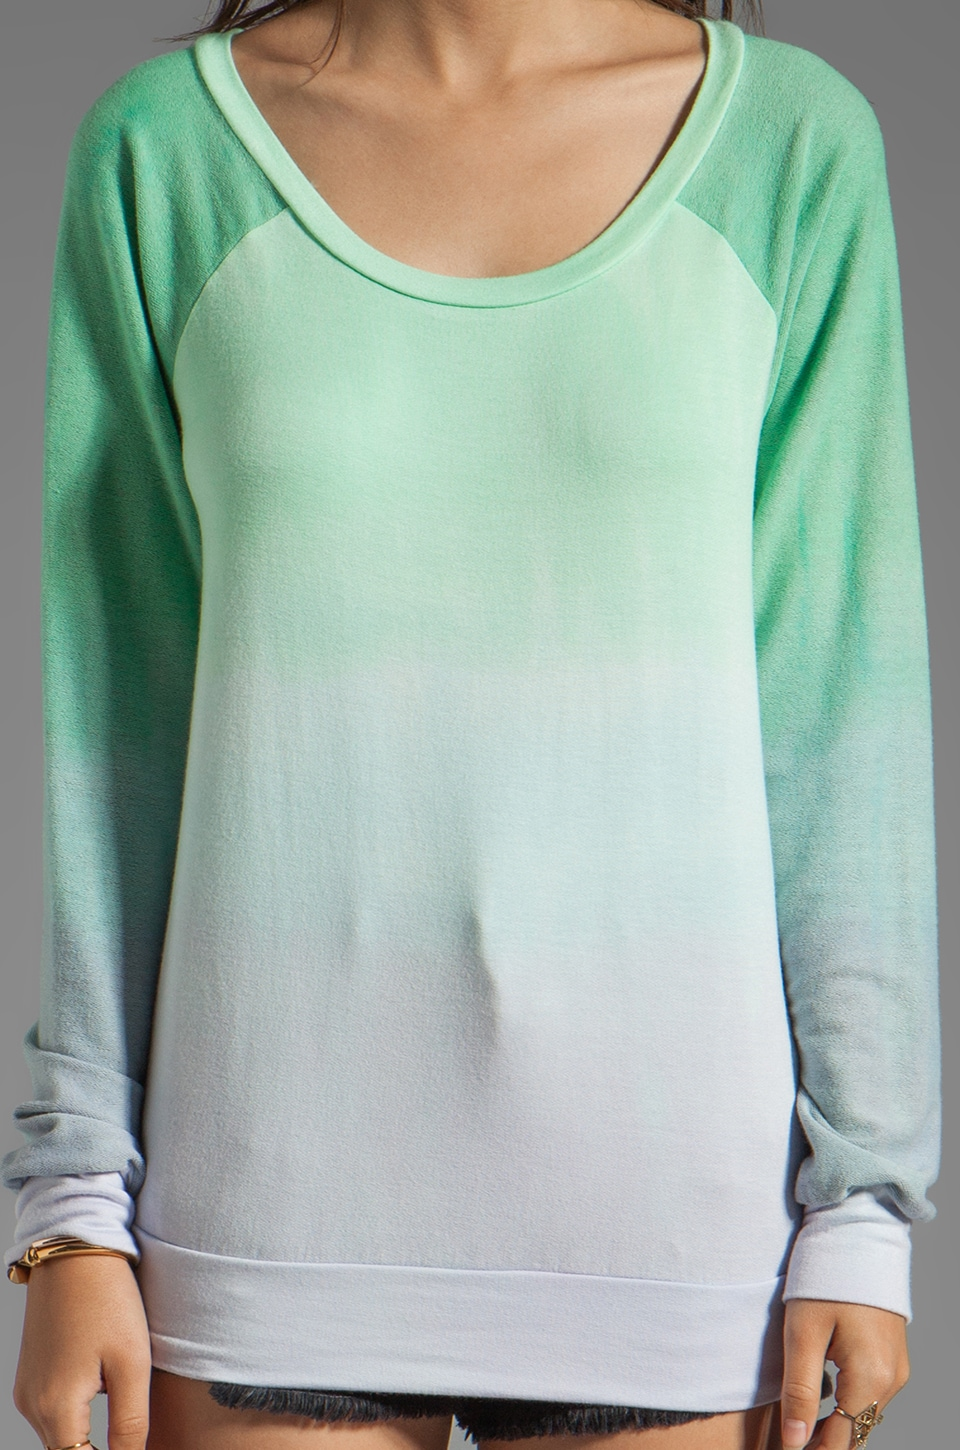 Blue Life Classic Sweatshirt in Mint/Ocean Breeze